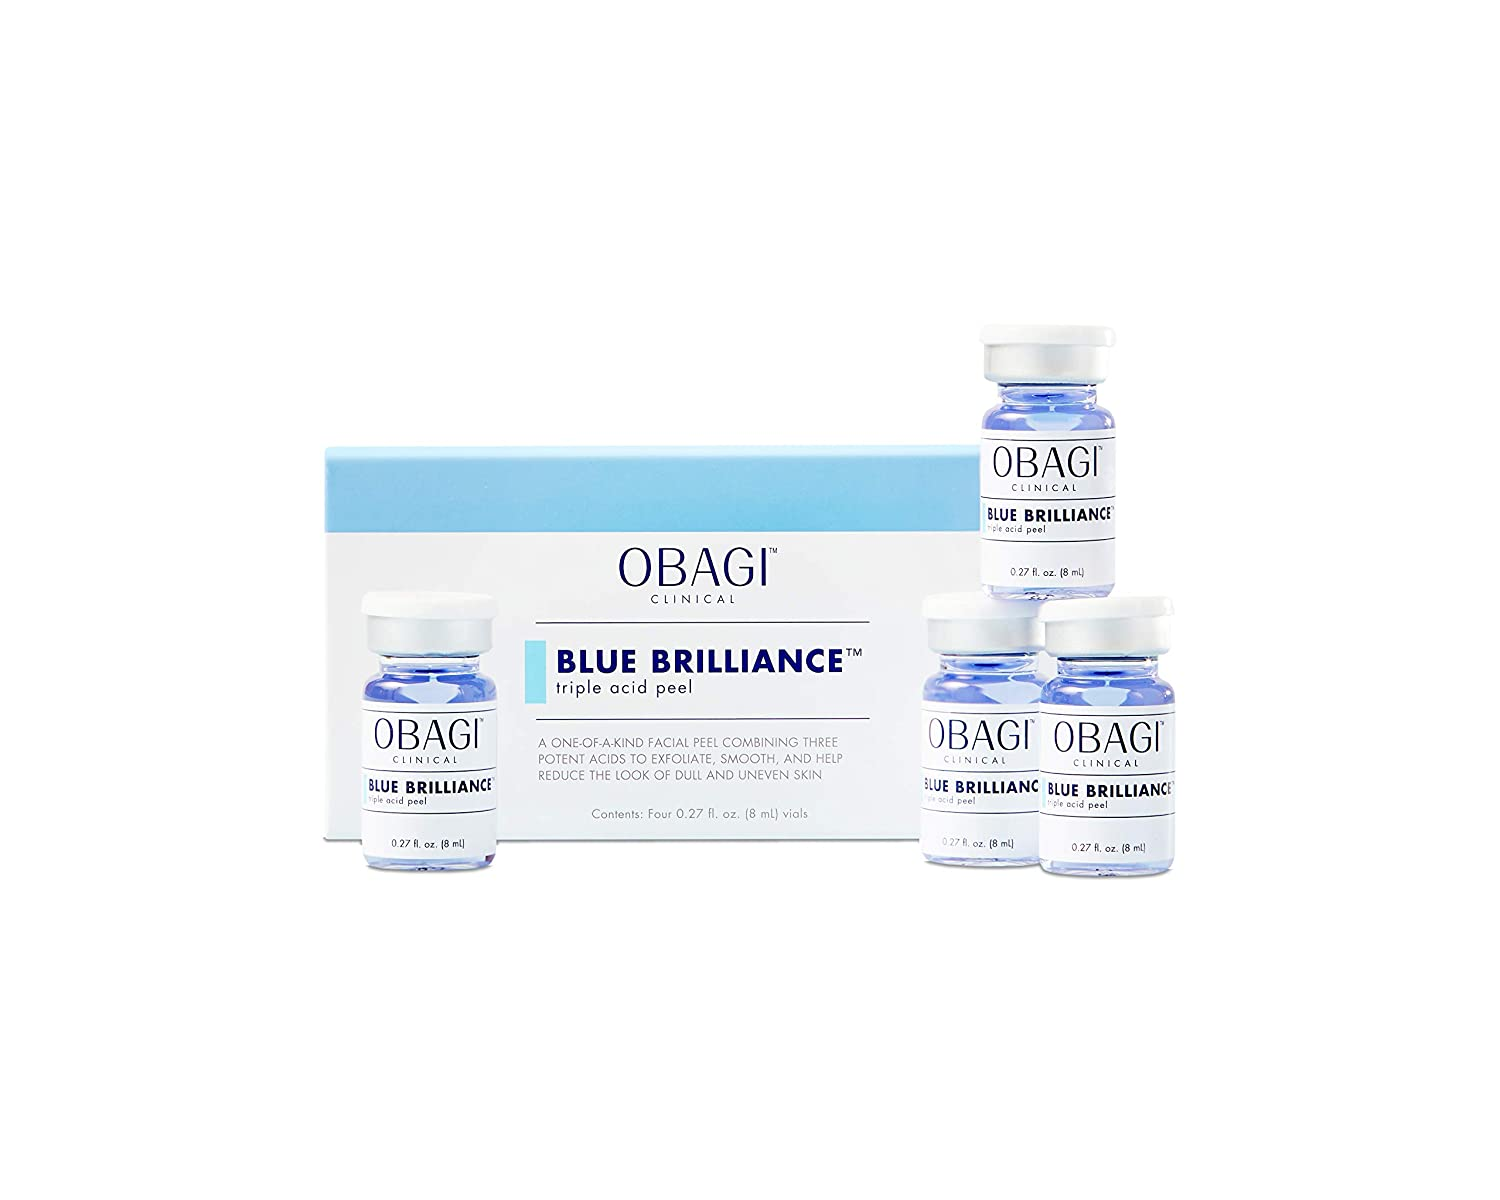 Obagi Clinical Blue Brilliance Triple Acid Peel 4 Piece Kit (0.27 Fl Oz Per Vial)